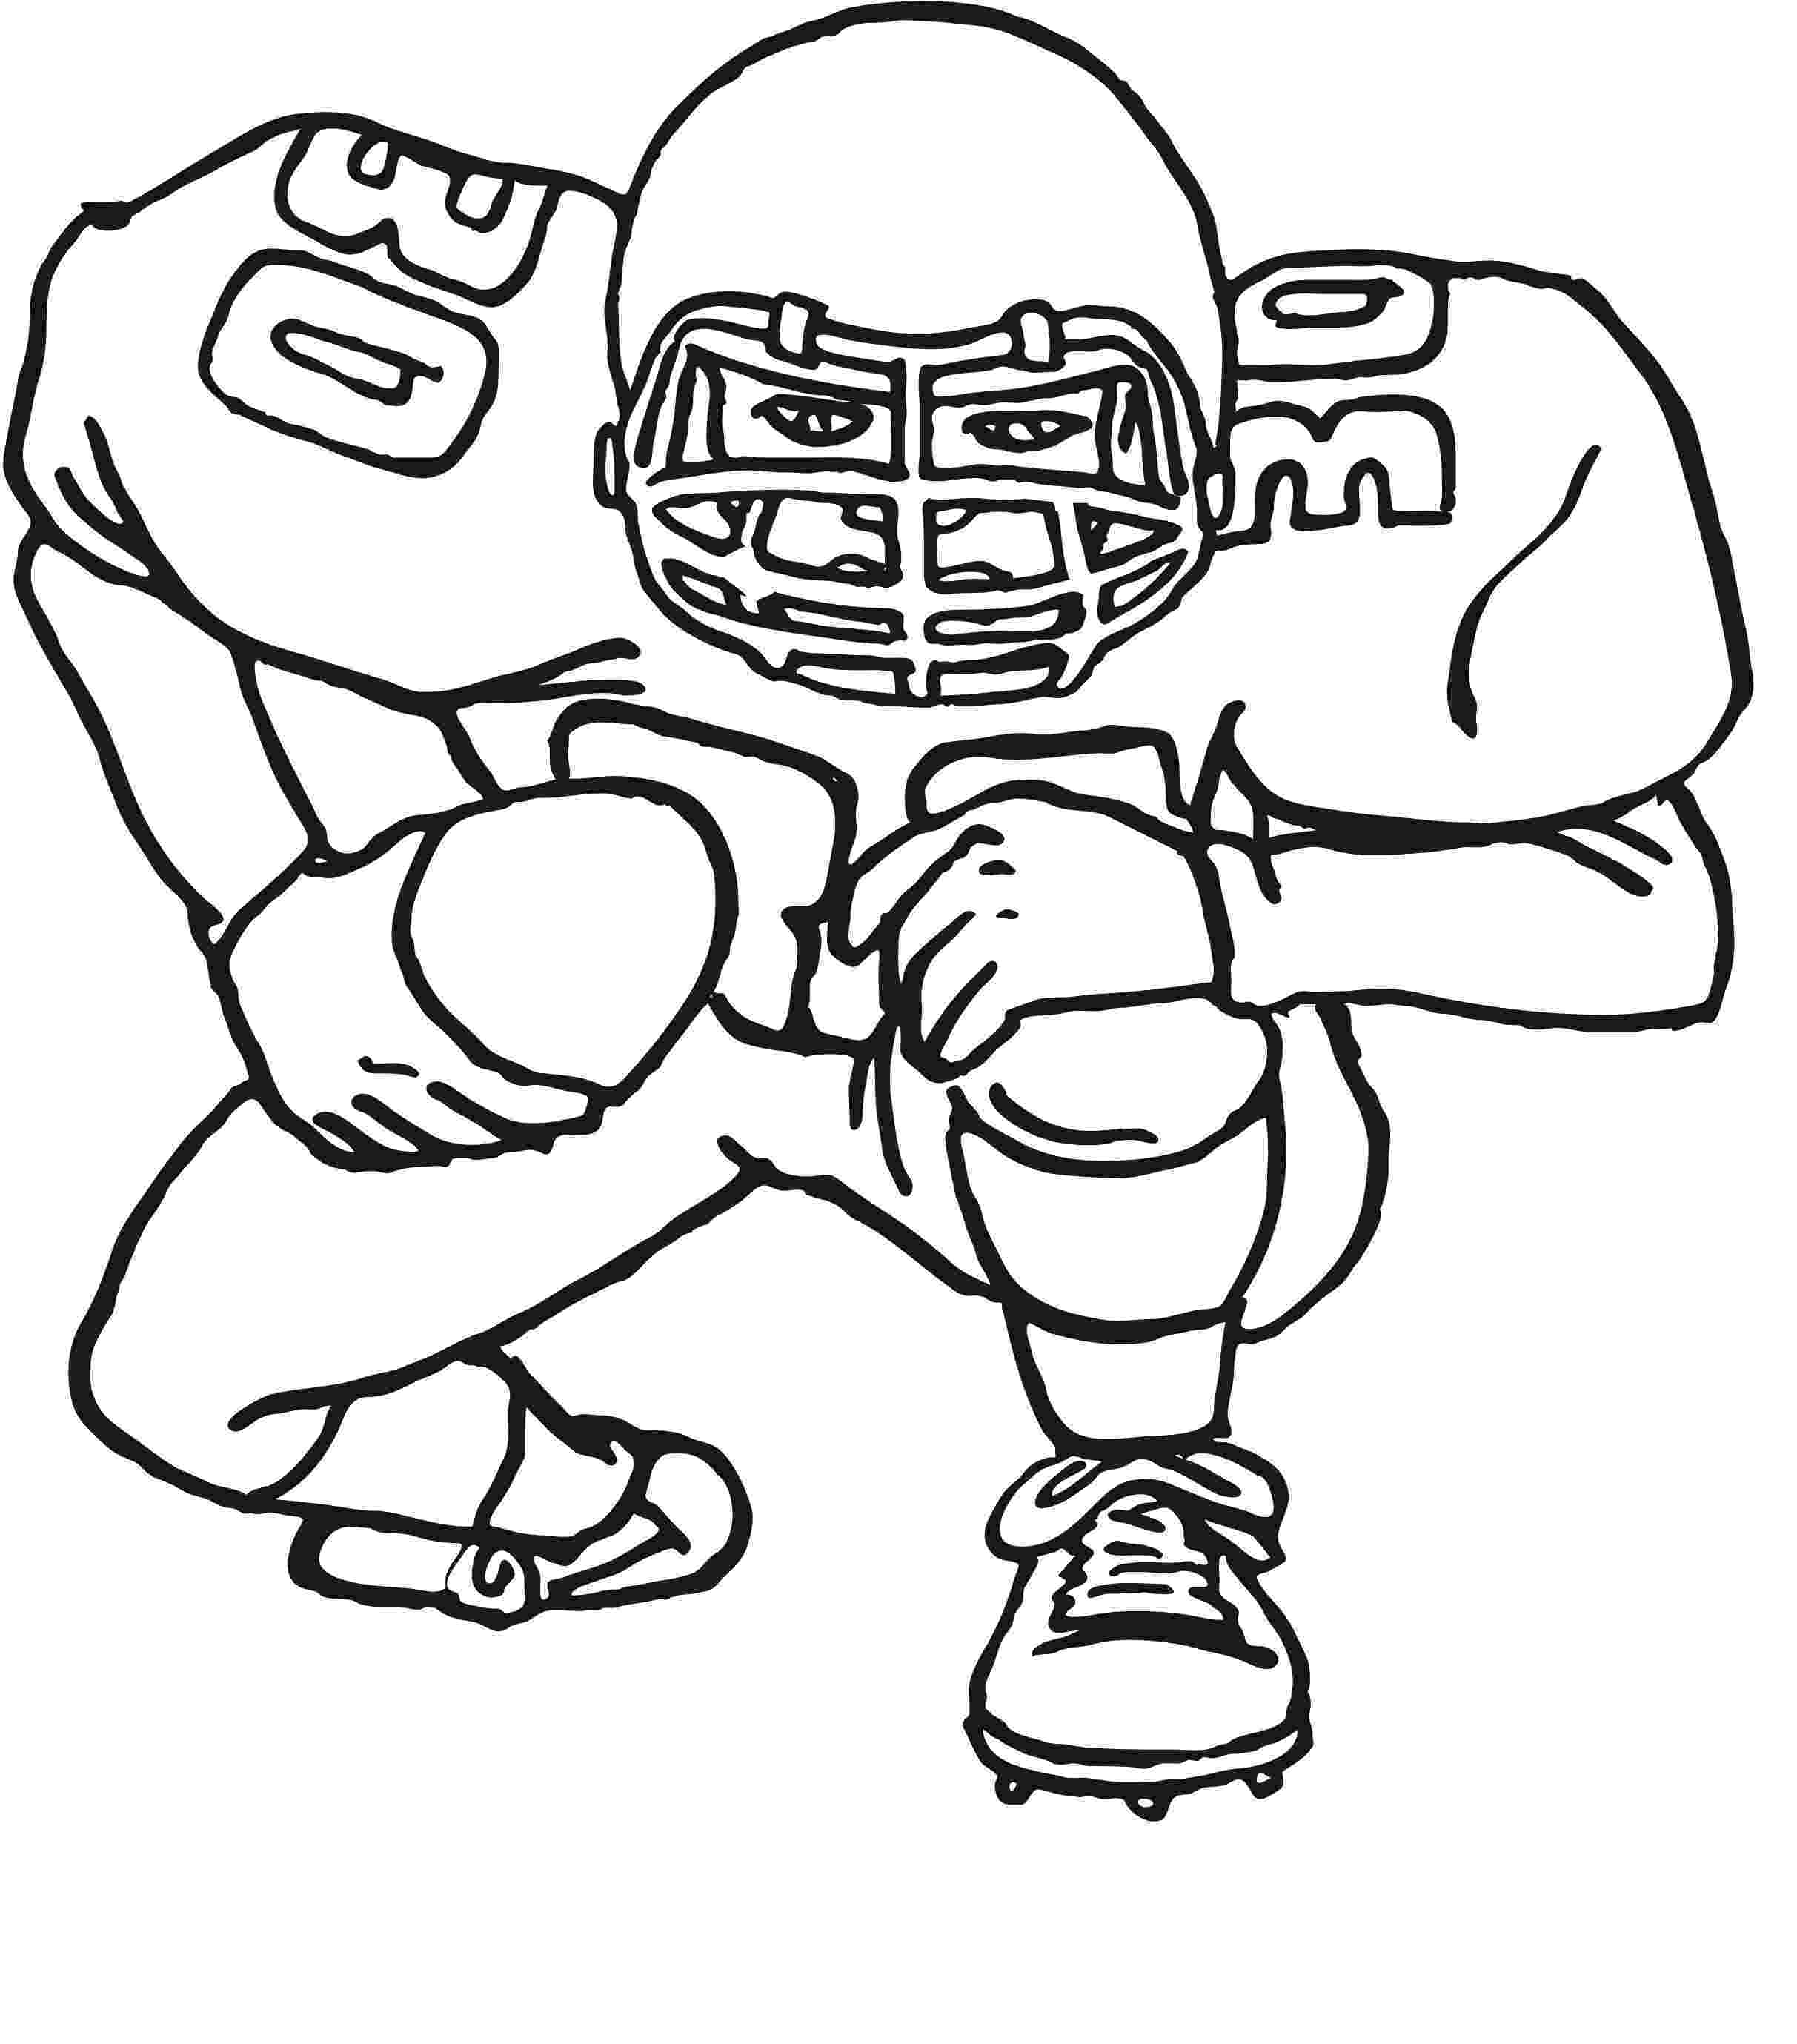 football players coloring pages american football players kids coloring pages choosboox pages football players coloring